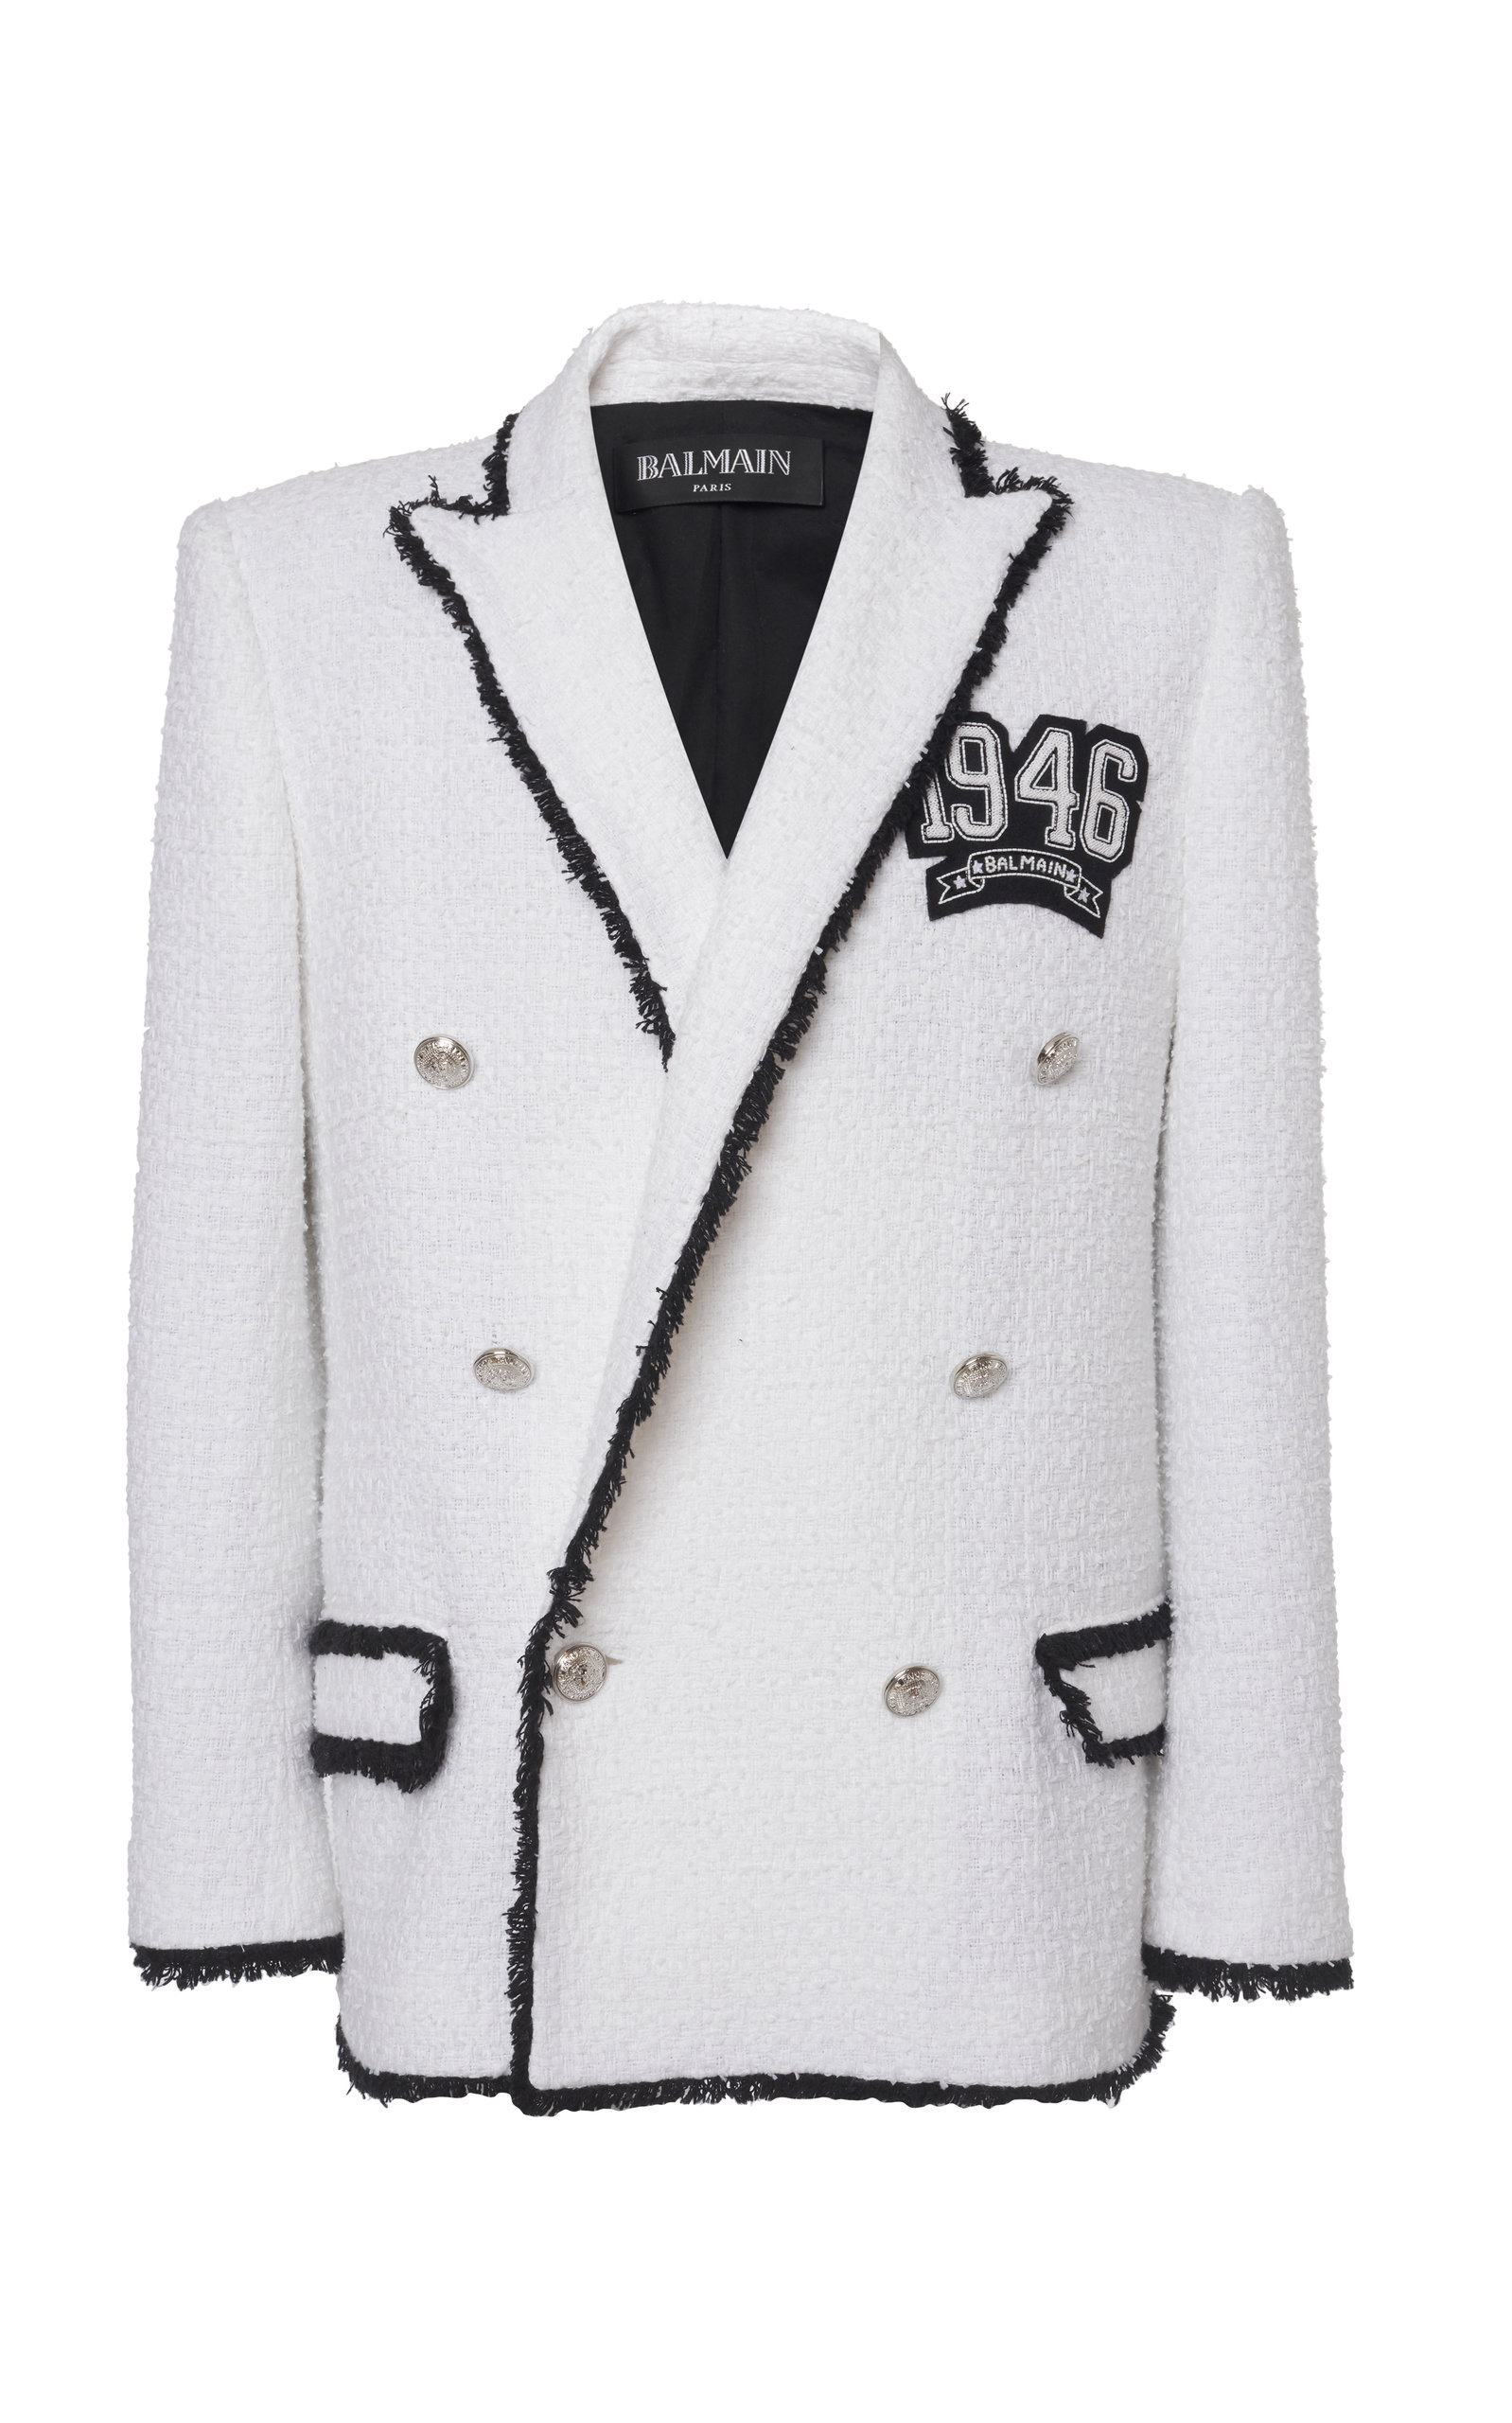 b21bf8d5 Double Breasted Fringed Tweed Jacket by Balmain | Moda Operandi